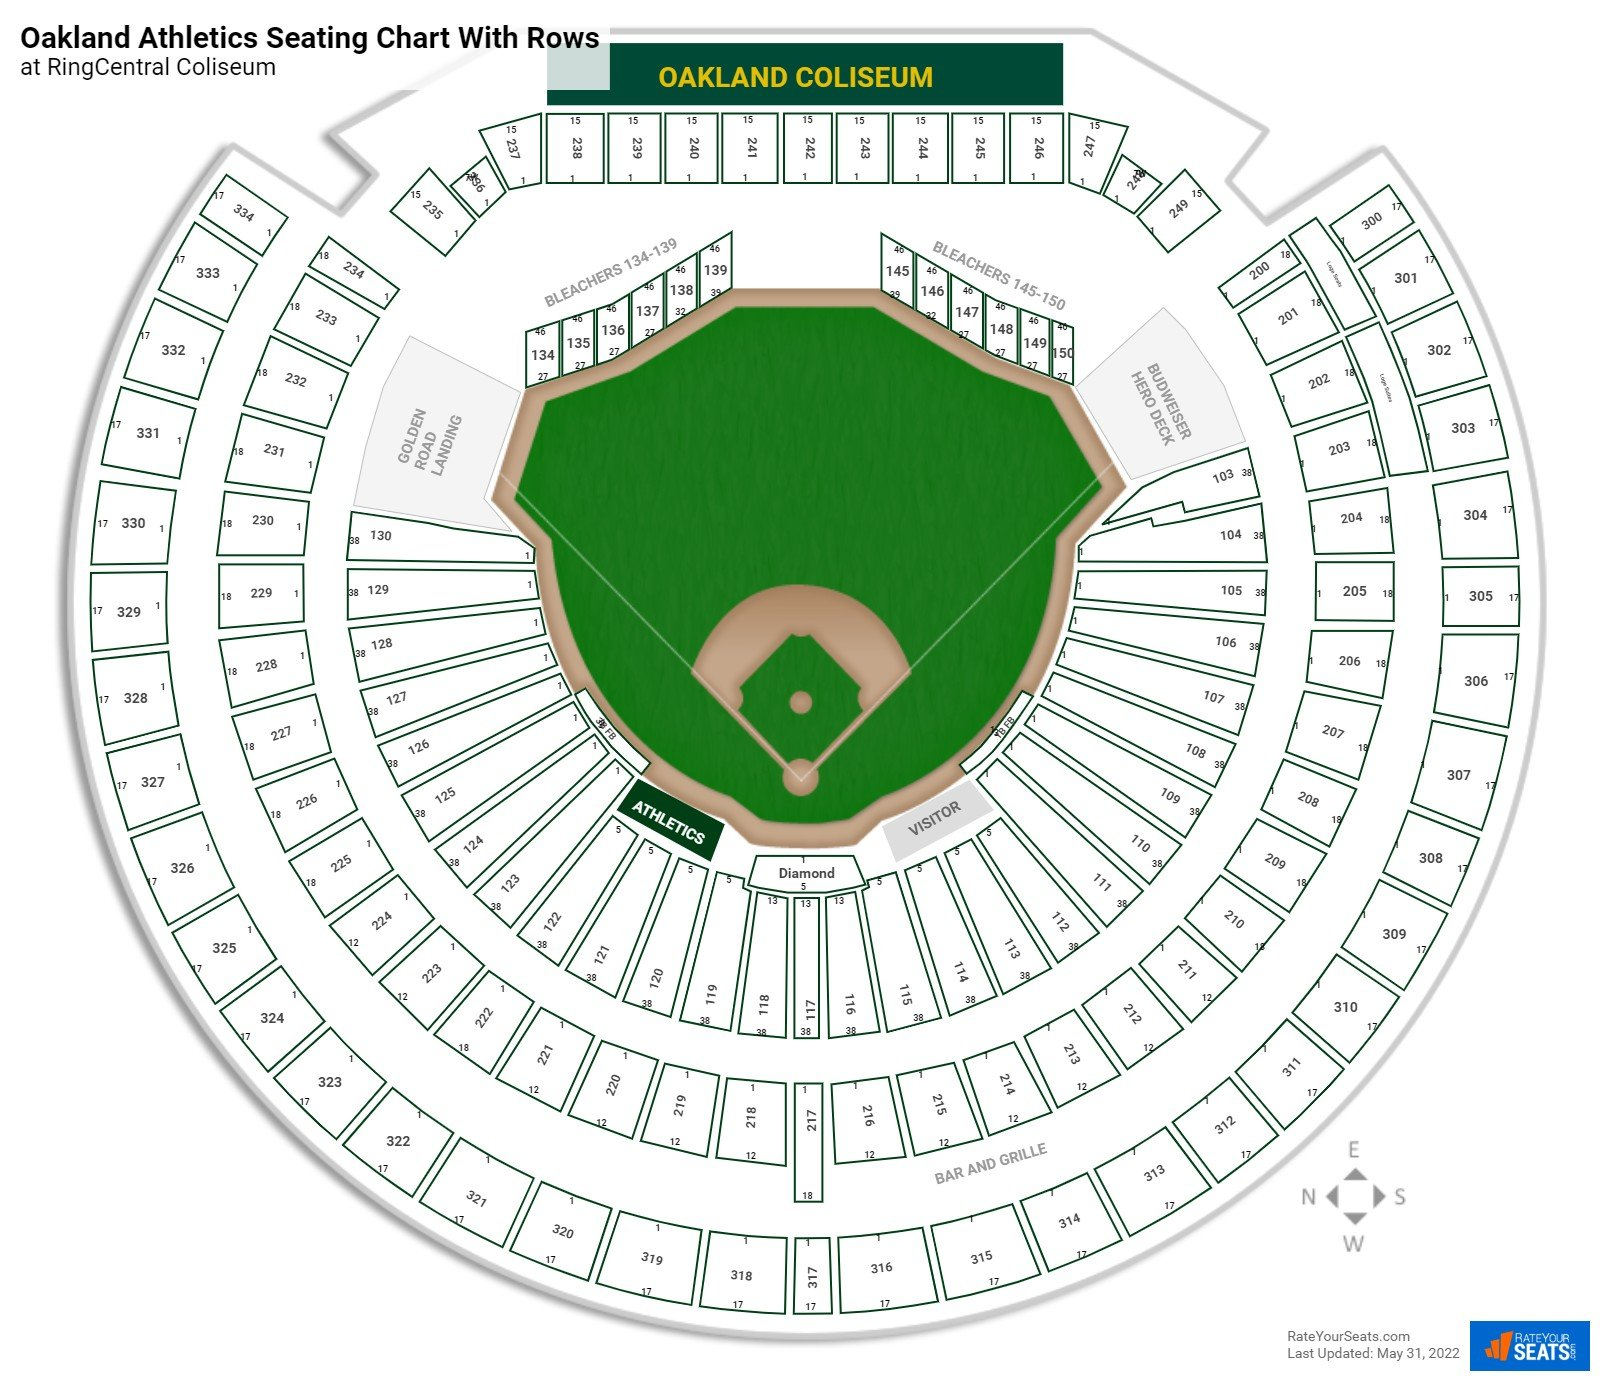 Oakland Athletics Seating Charts At Ringcentral Coliseum Rateyourseats Com